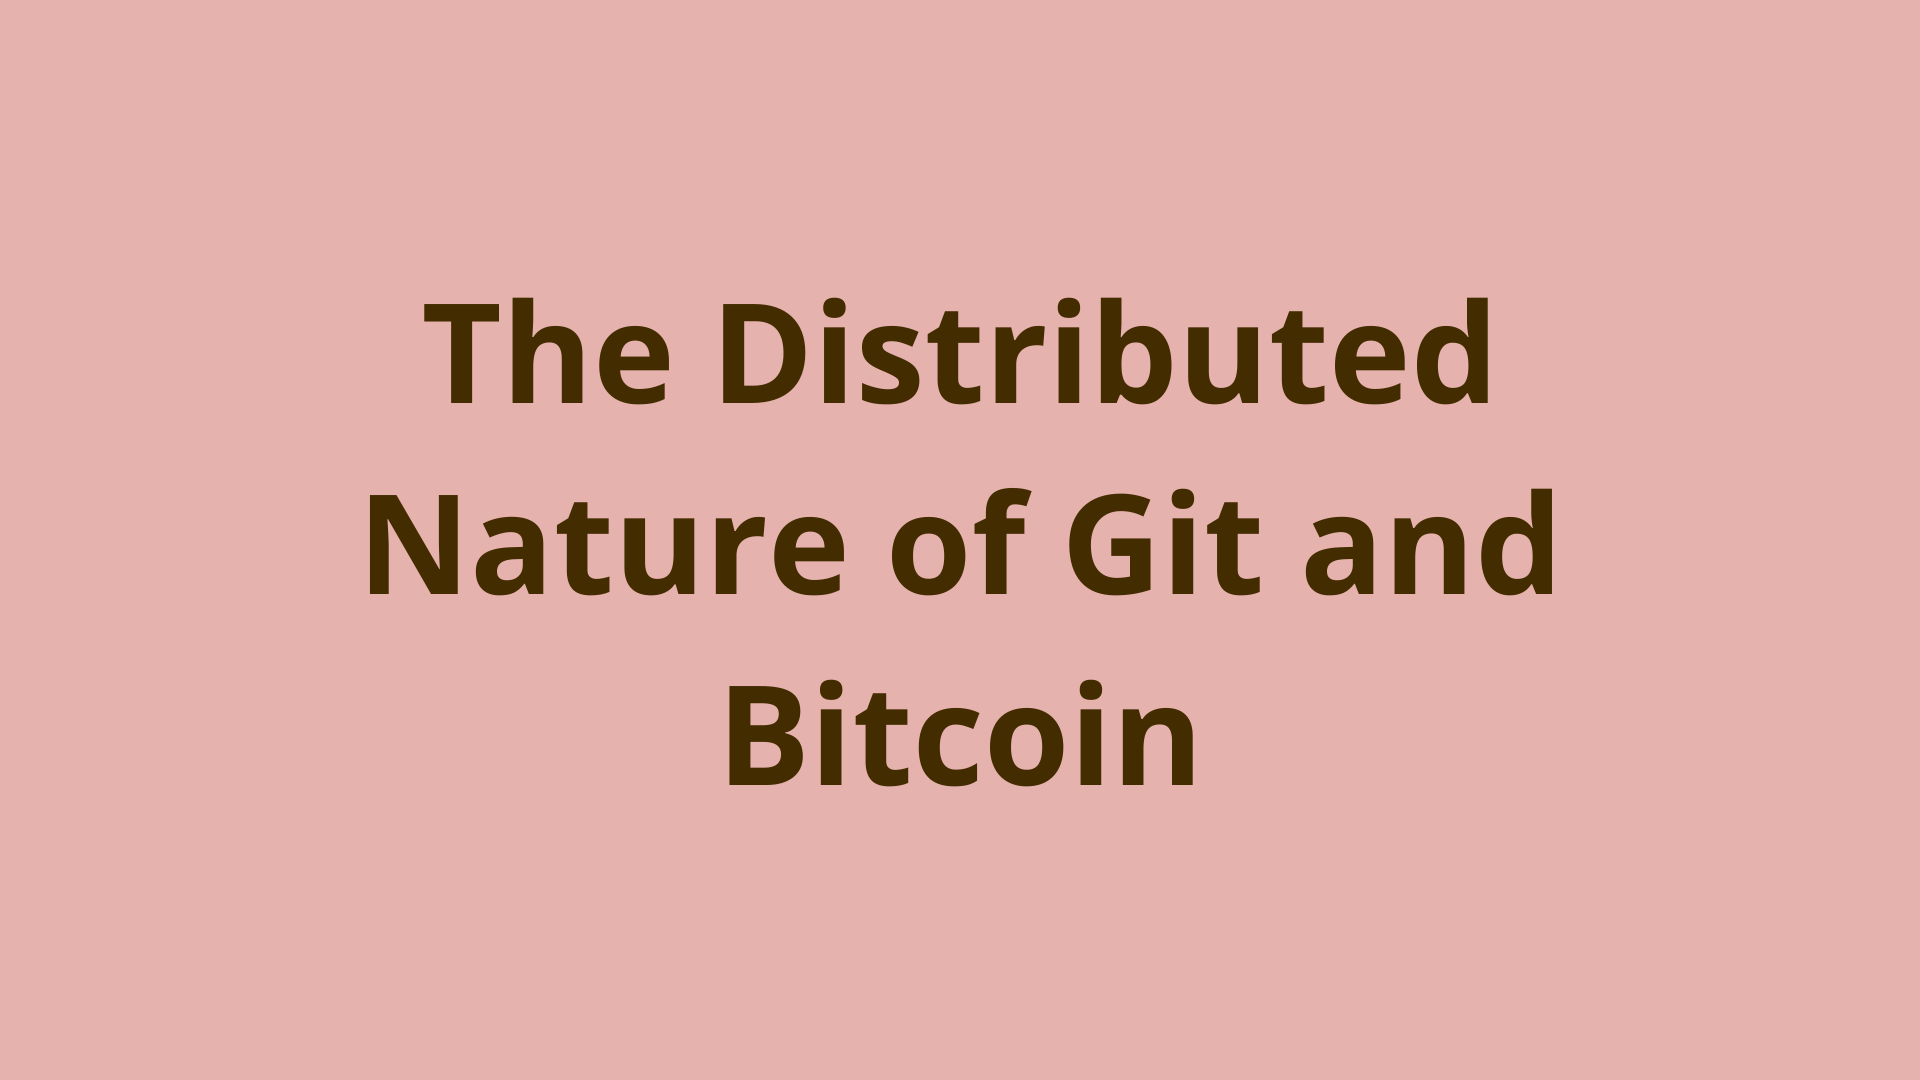 Image of The Distributed Nature of Git and Bitcoin